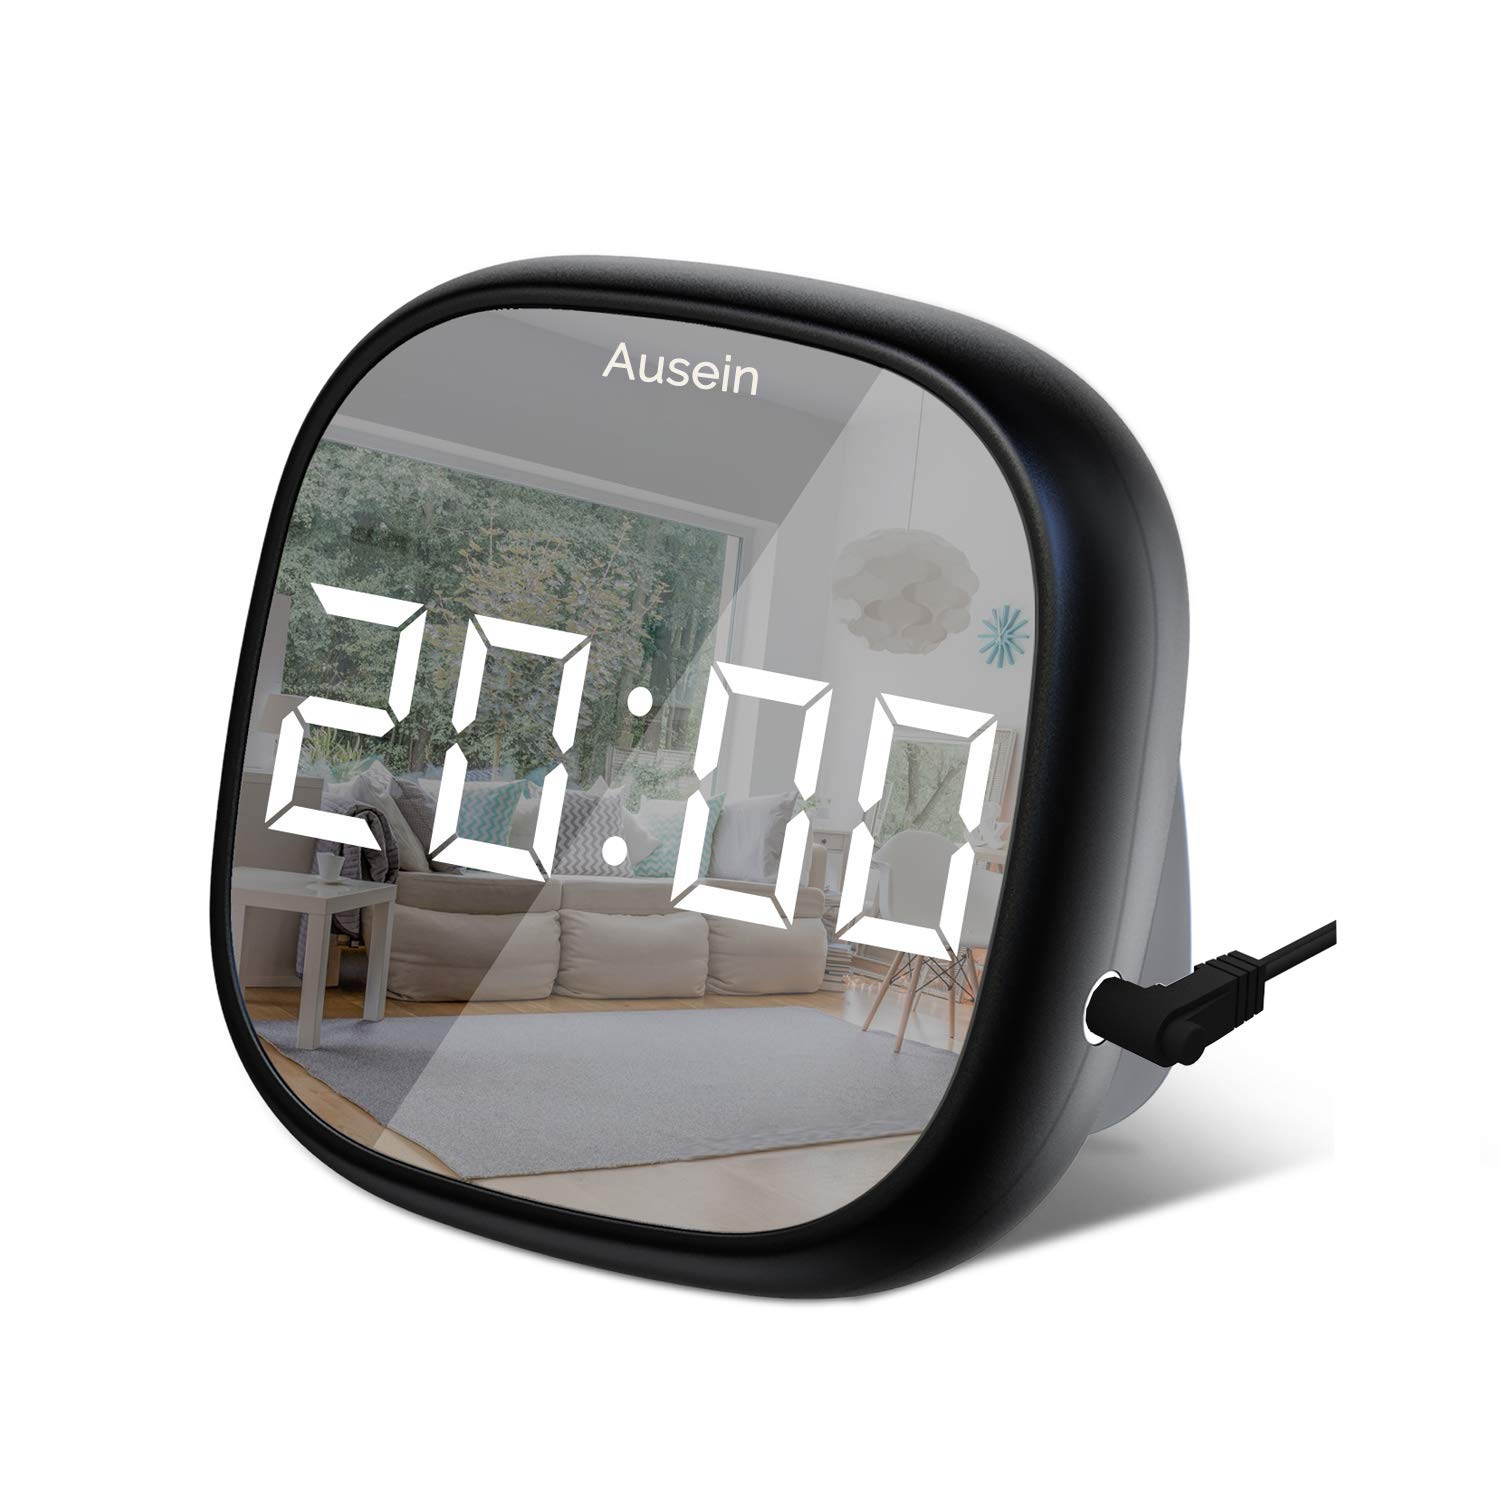 small little travel alarm clock